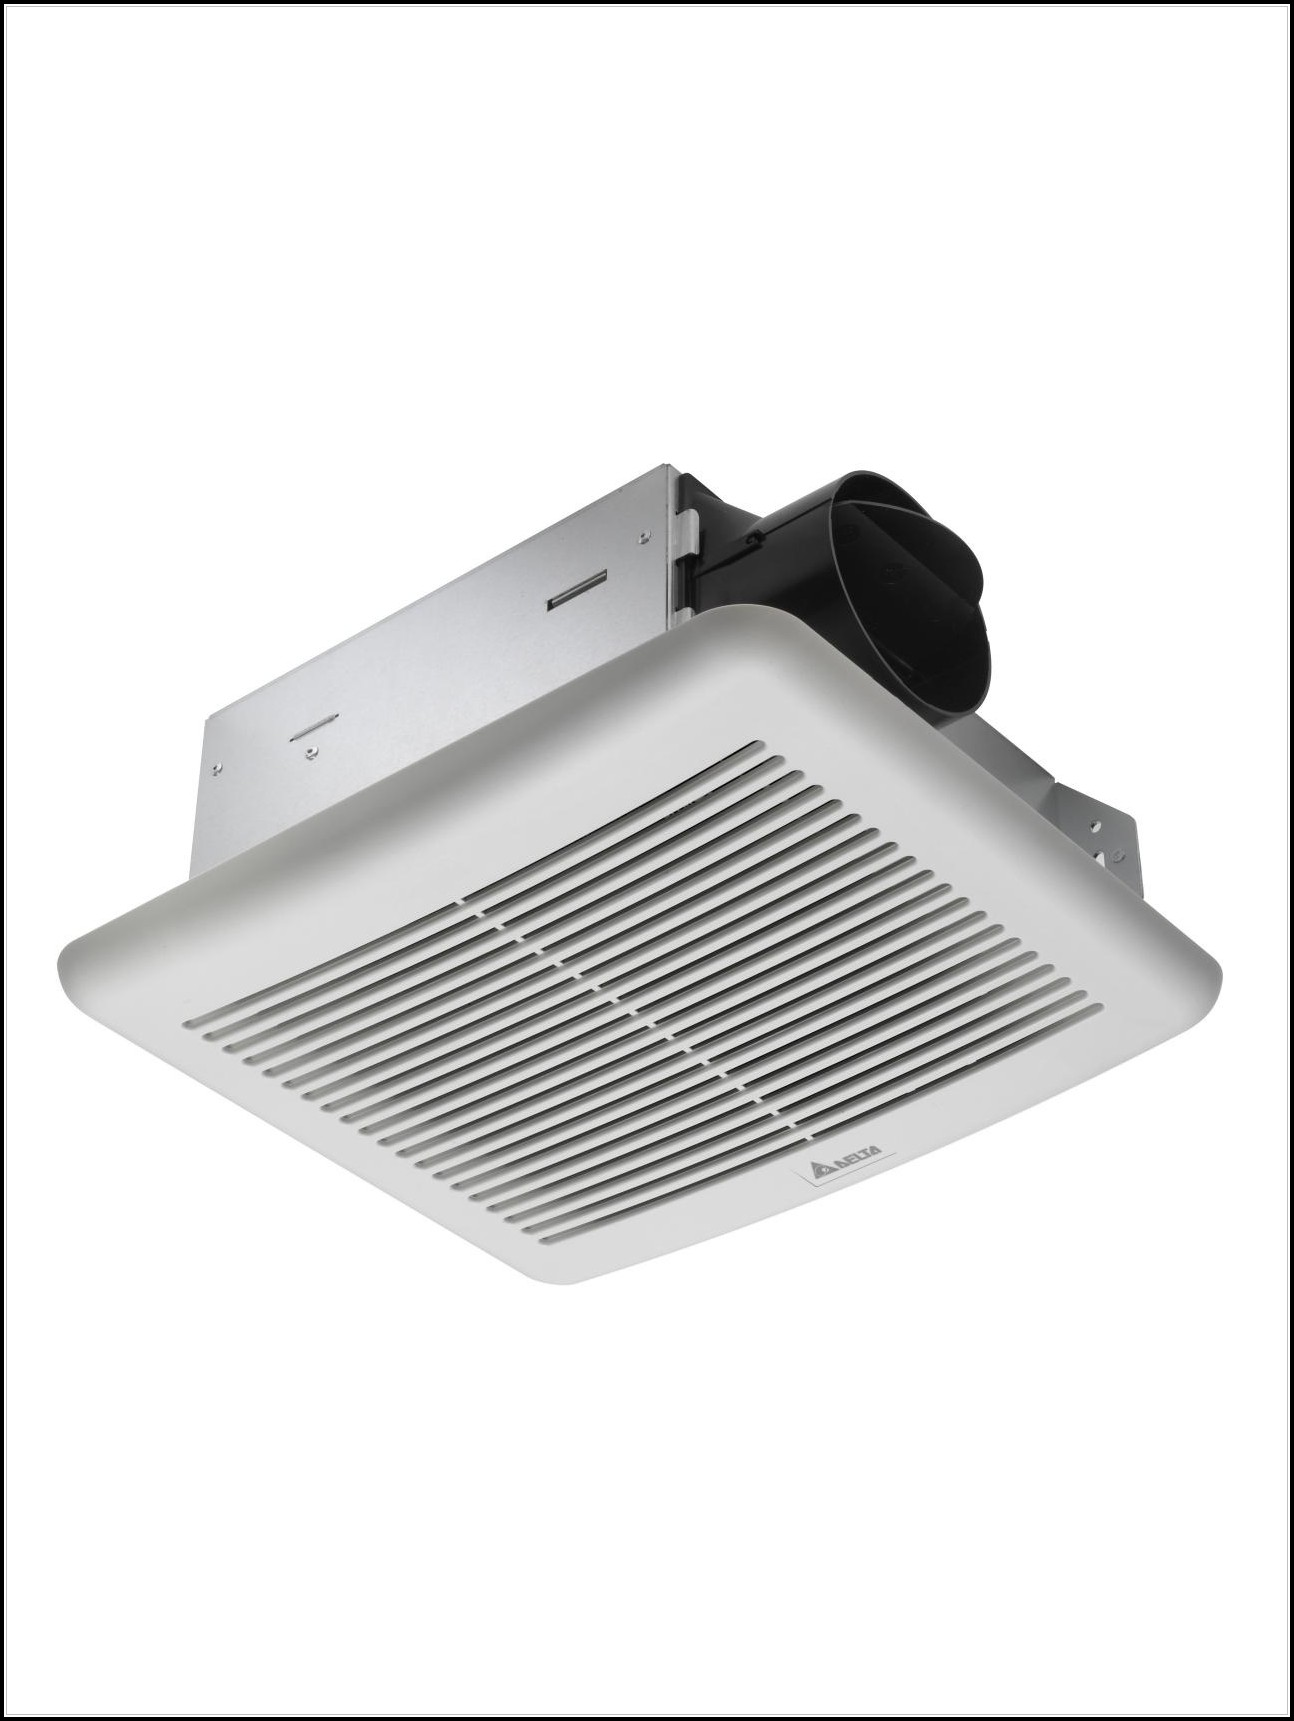 Exhaust Fans For Bathrooms Ratings